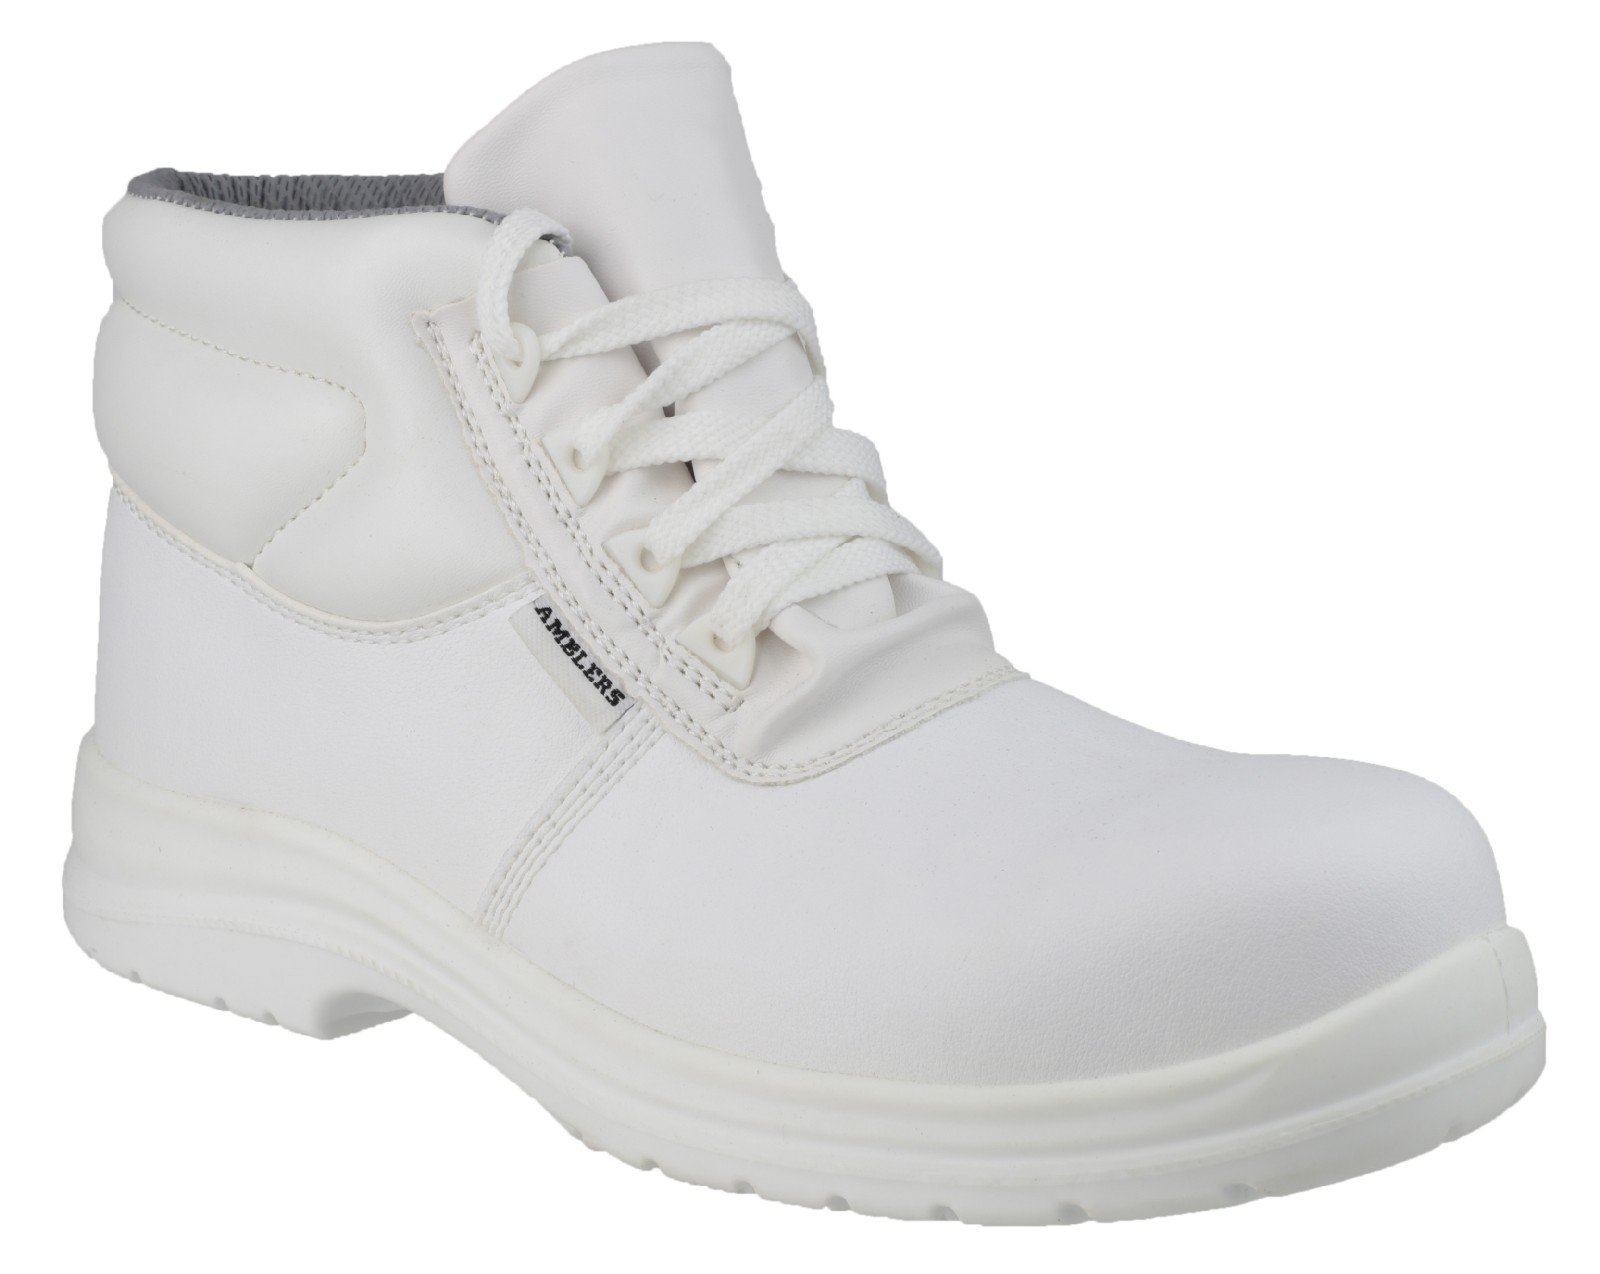 Amblers Safety FS513 S2 Boot (White)